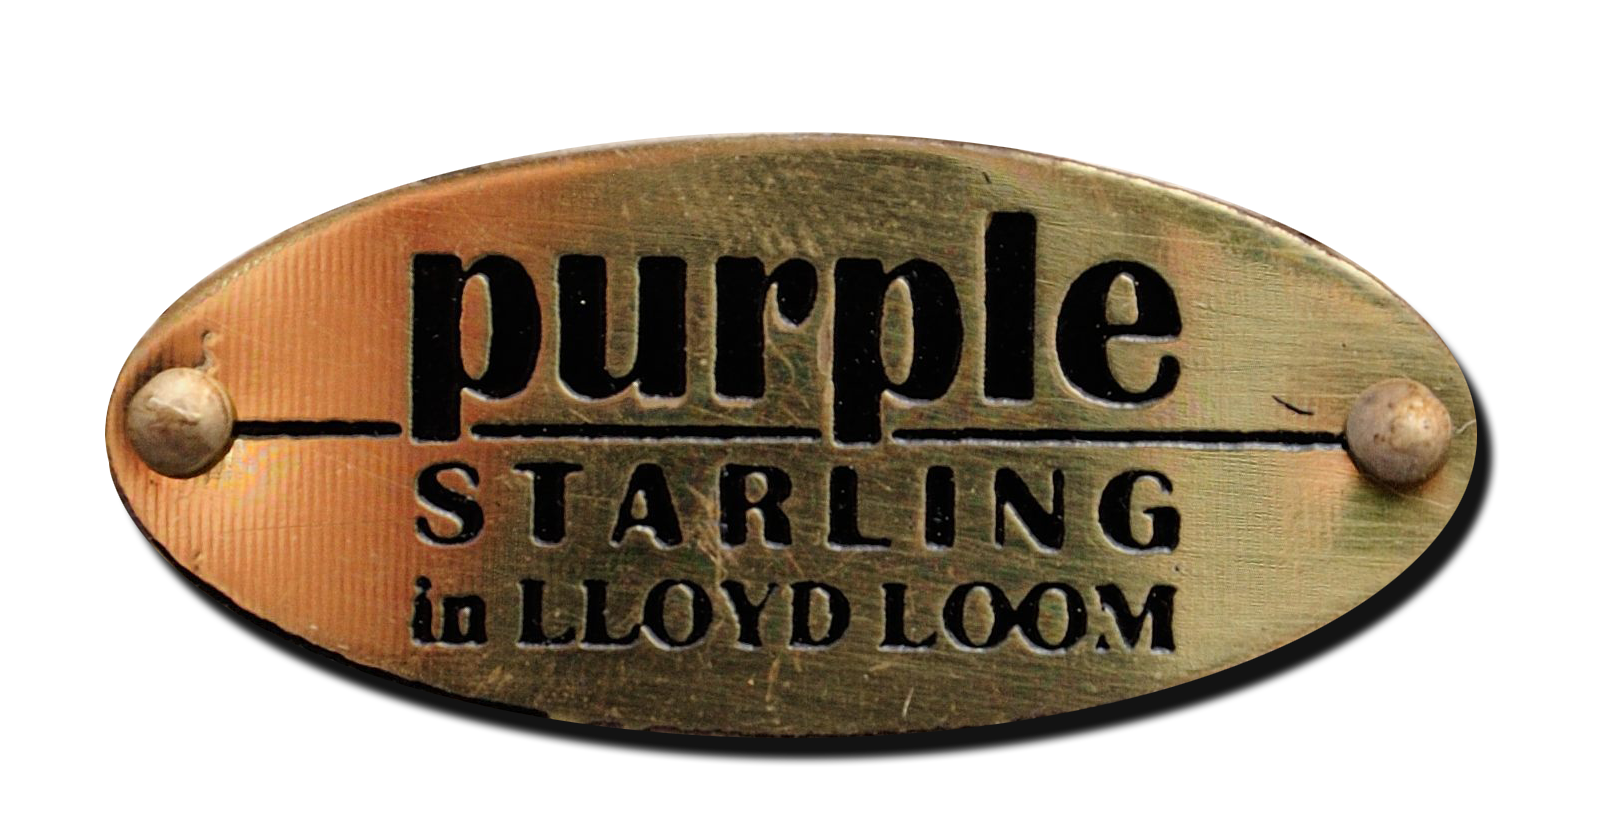 Logo Purple Starling in Lloyd loom